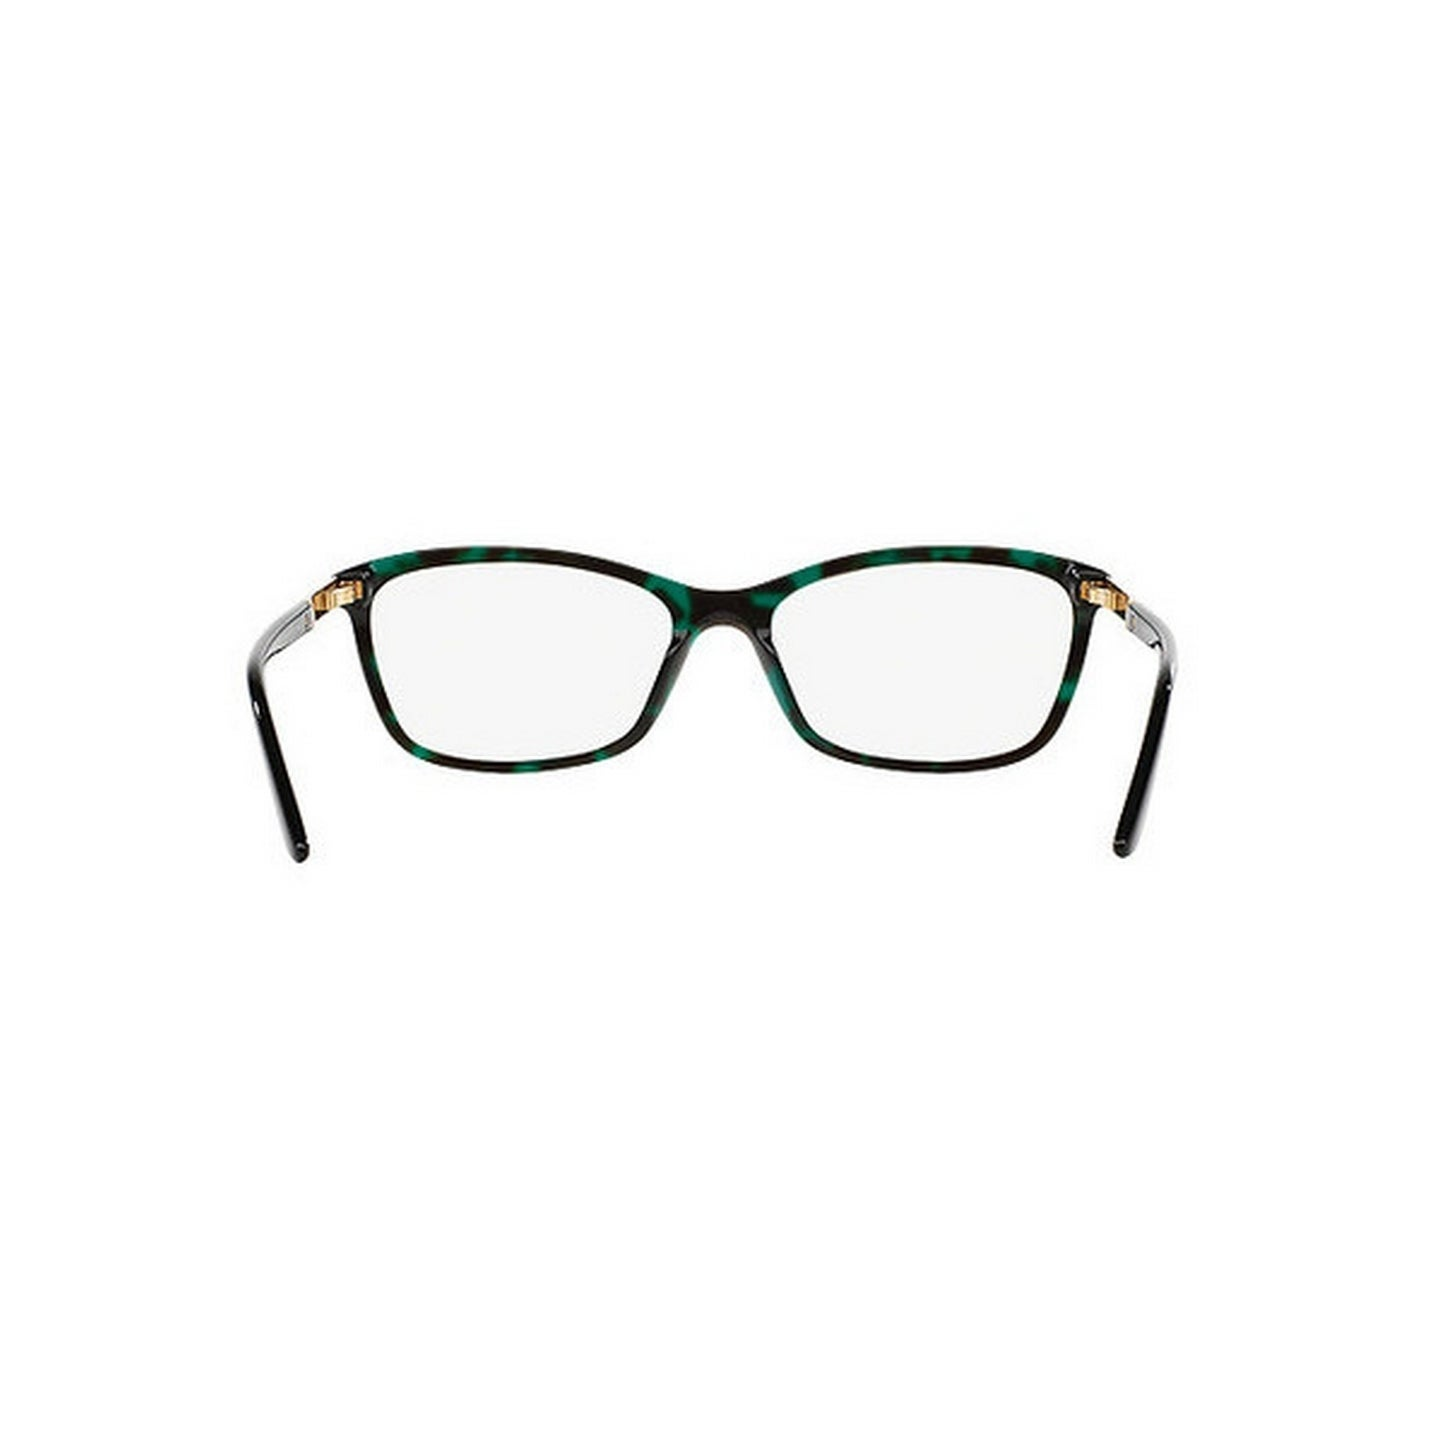 d8575ffc0bc6 Shop Versace Women s VE3186 5076 52 Cateye Metal Plastic Green Clear  Eyeglasses - Free Shipping Today - Overstock - 14779960